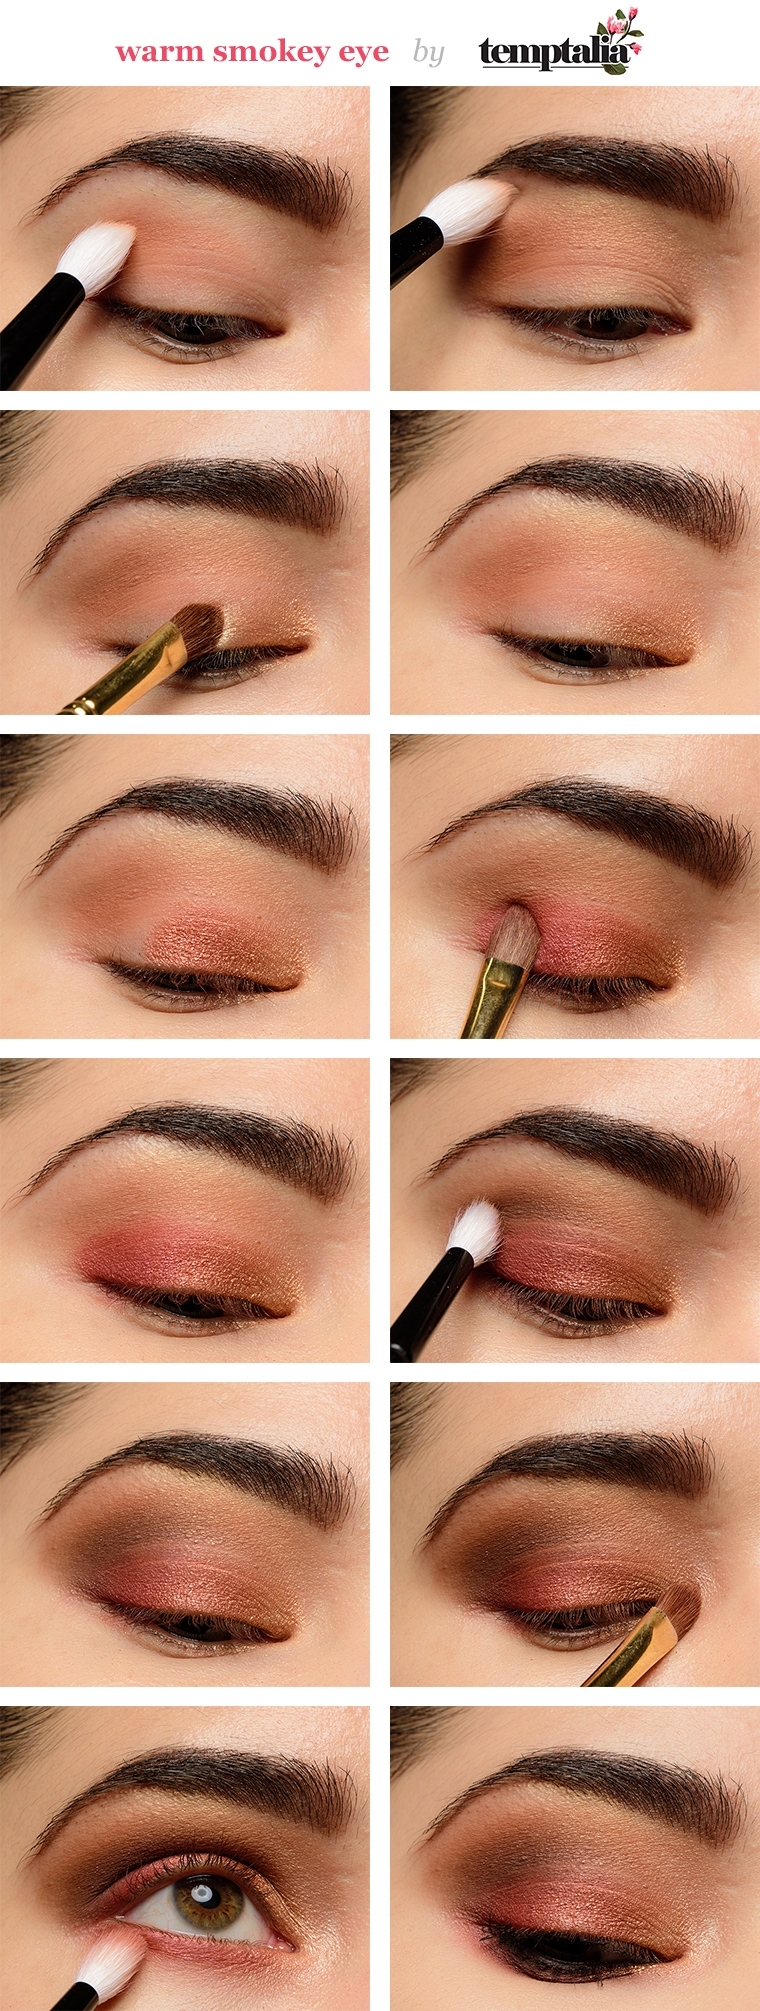 How To Apply Eyeshadow: Smokey Eye Makeup Tutorial For Beginners within Applying Smokey Eye Makeup Step By Step